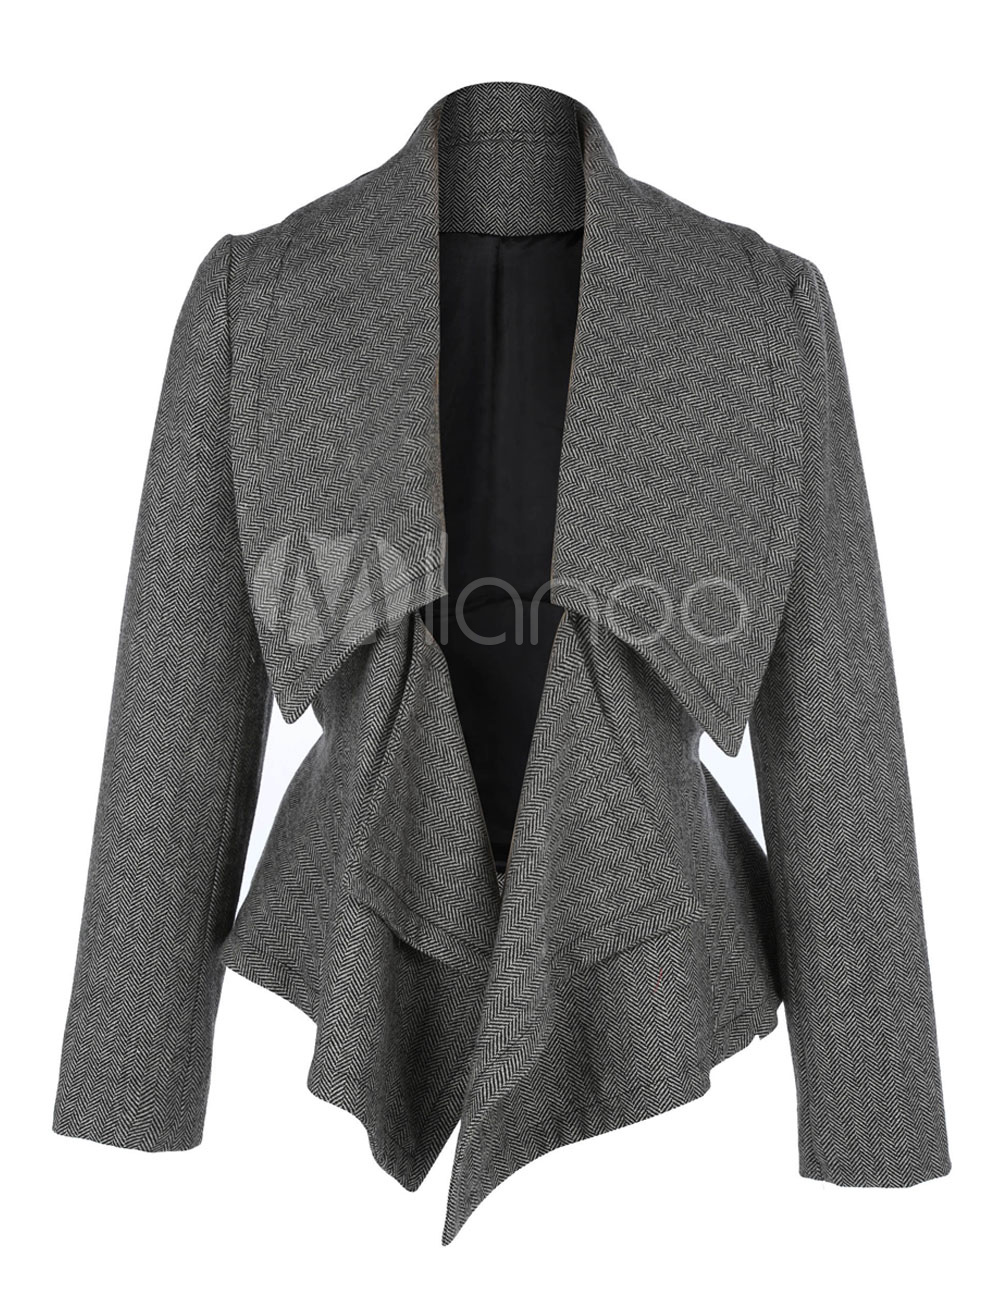 Women Blazer Jacket Grey Long Sleeve Turndown Collar Short Tweed Coat Cheap clothes, free shipping worldwide